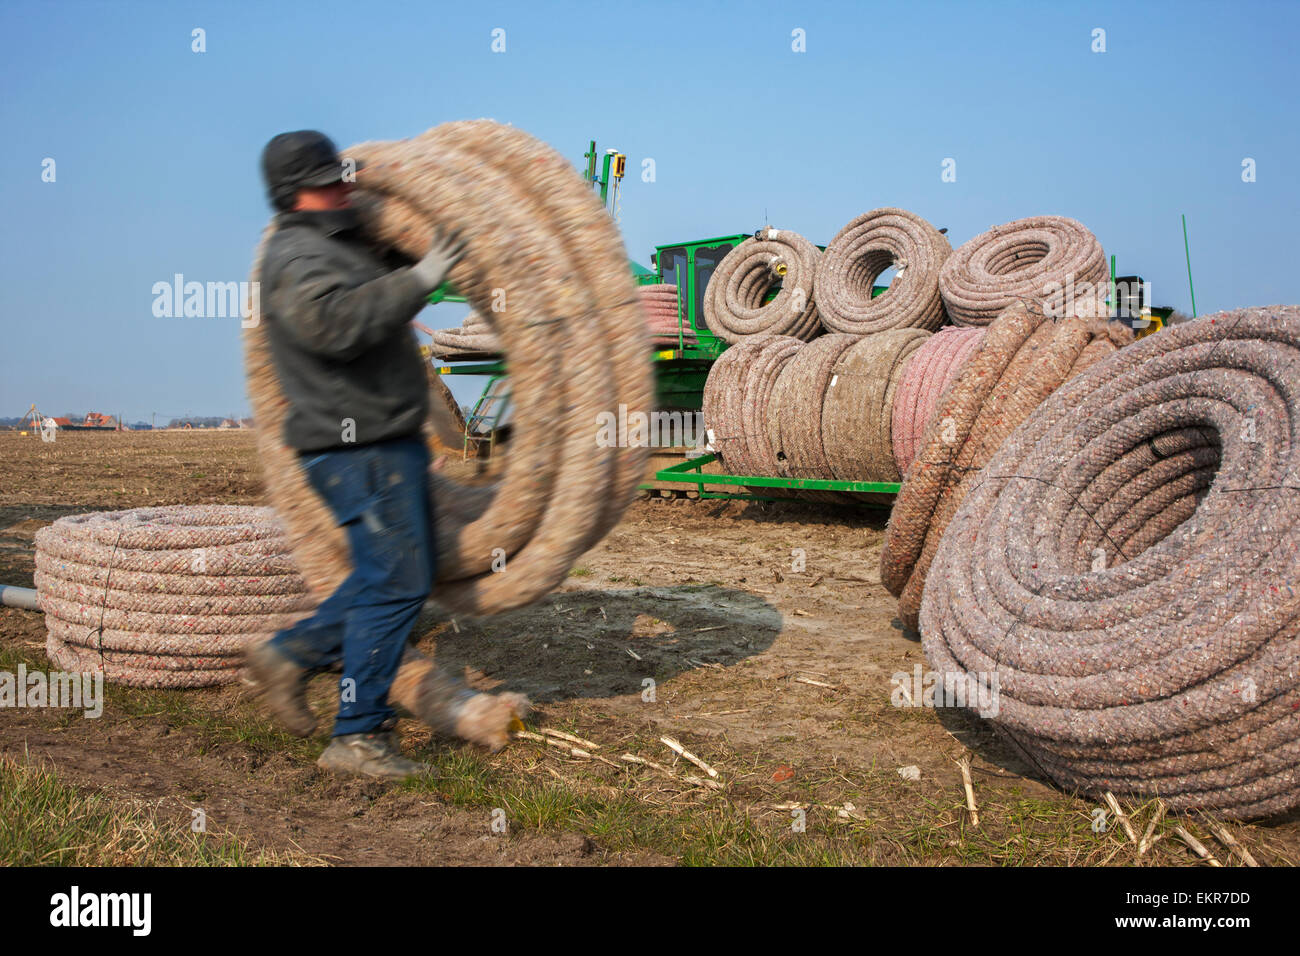 Contractor with drainage pipes loading drainage trencher / tile plow on farmland - Stock Image